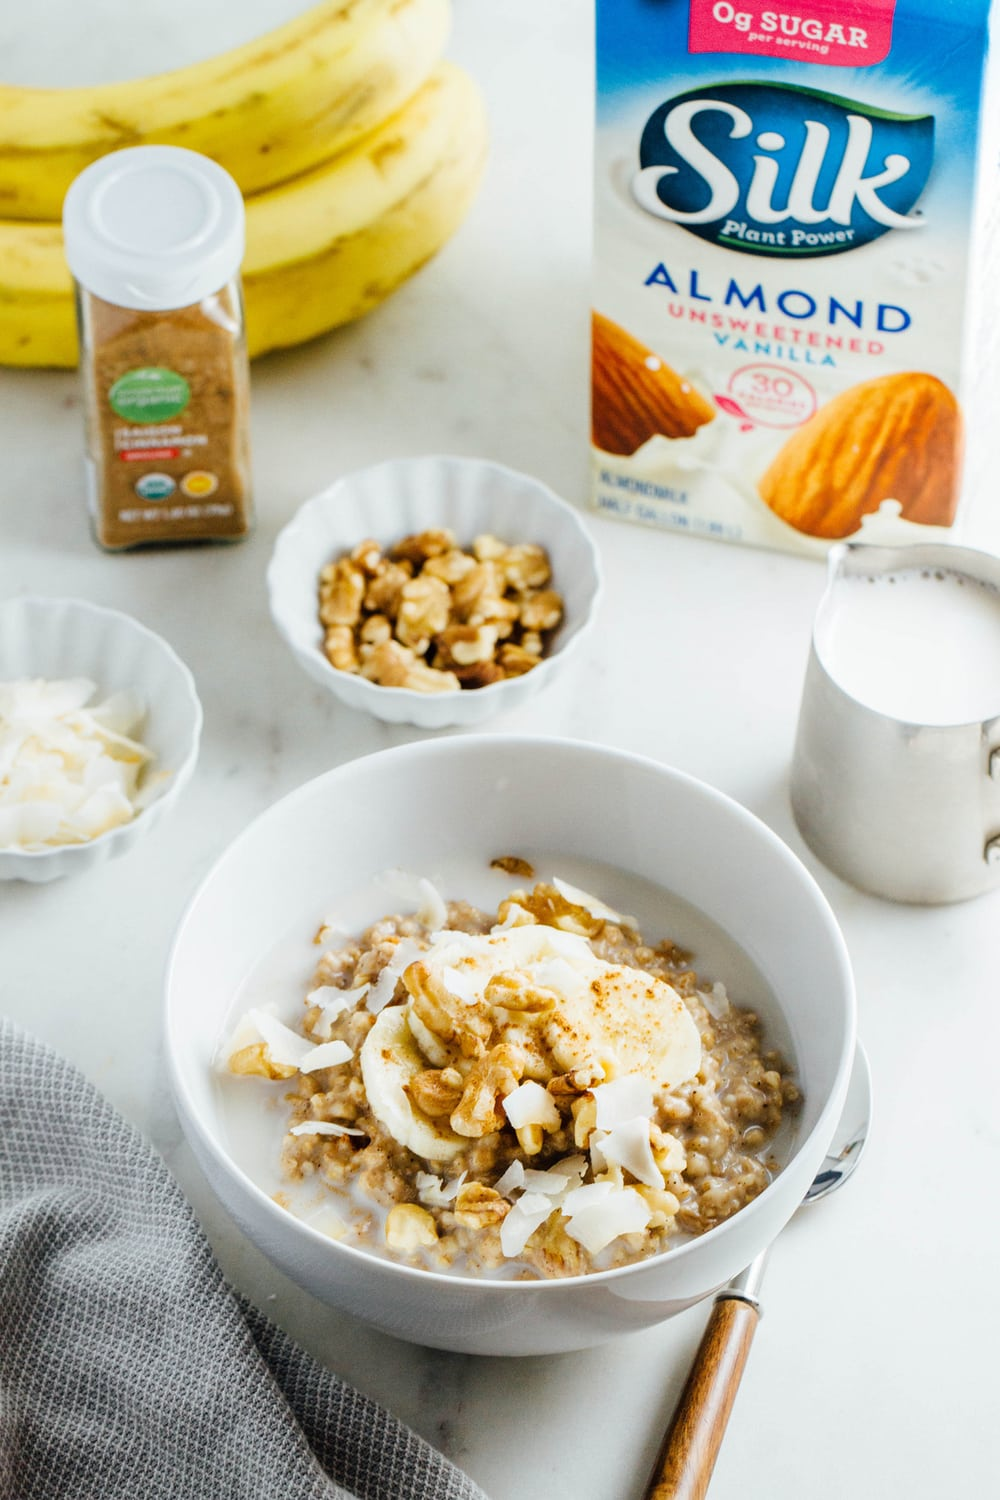 BANANA-NUT STEEL CUT OATMEAL